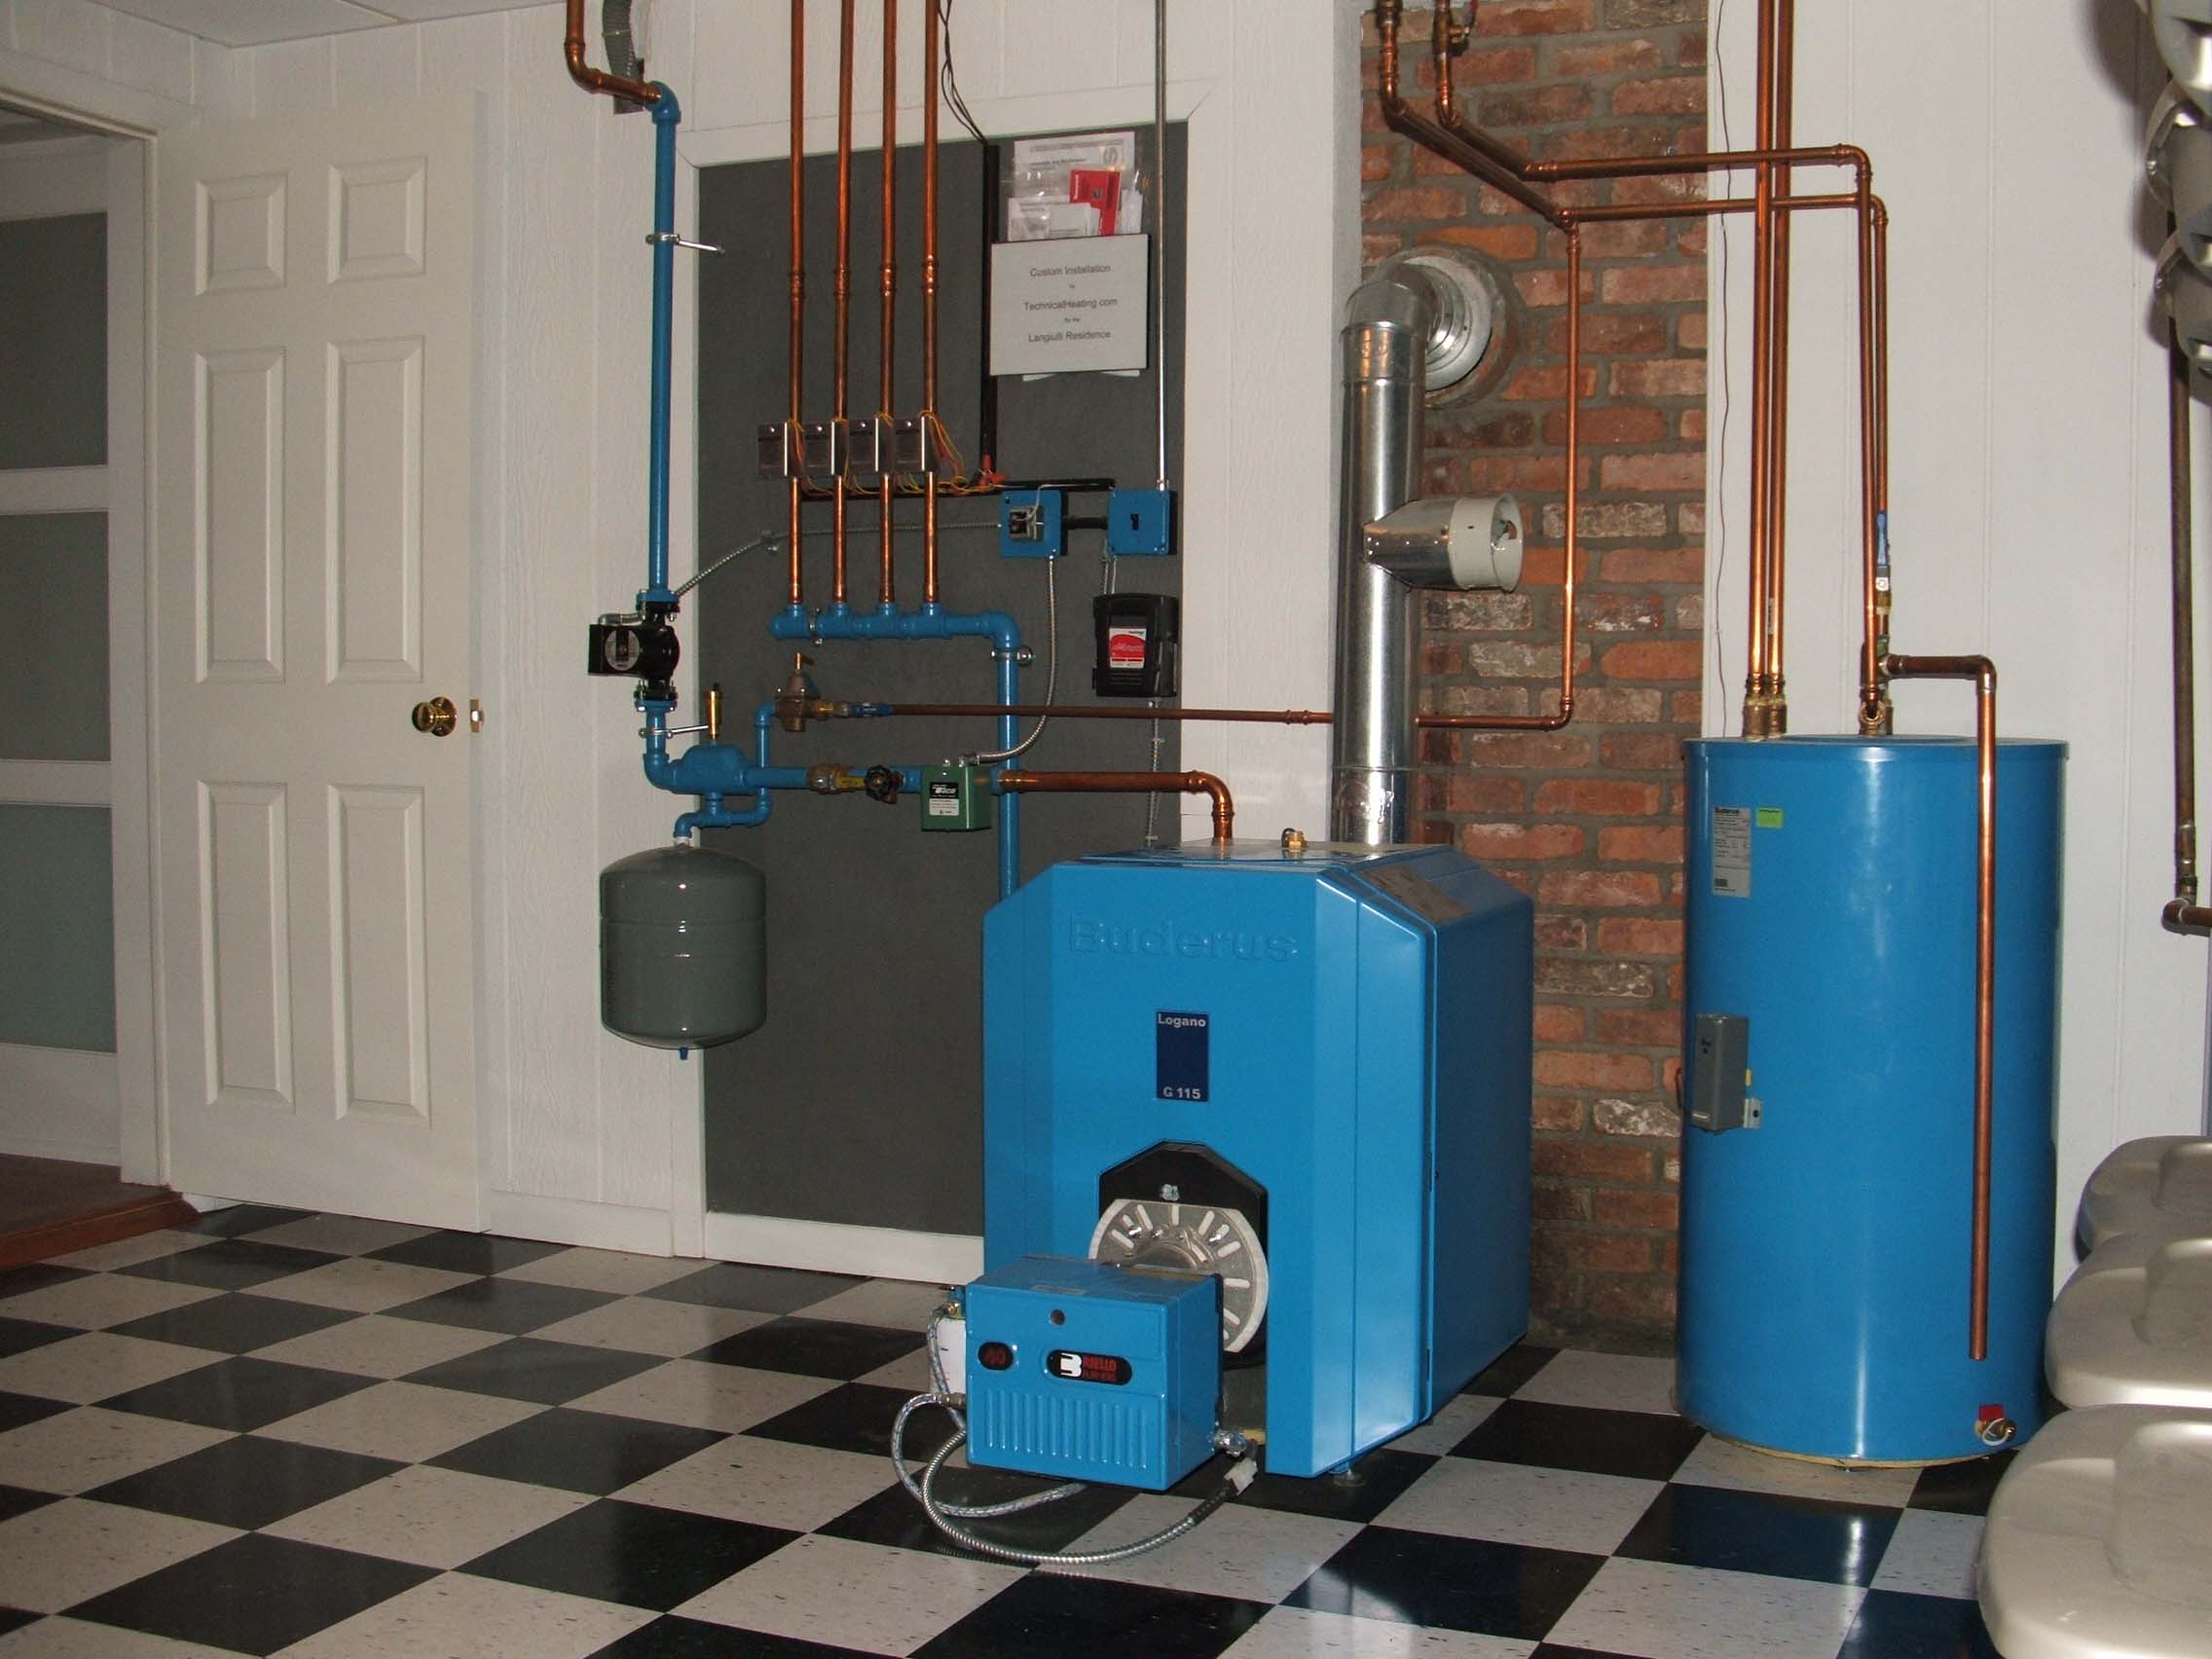 Are Burnham Boilers Reliable Other Ideas For Oil Heating